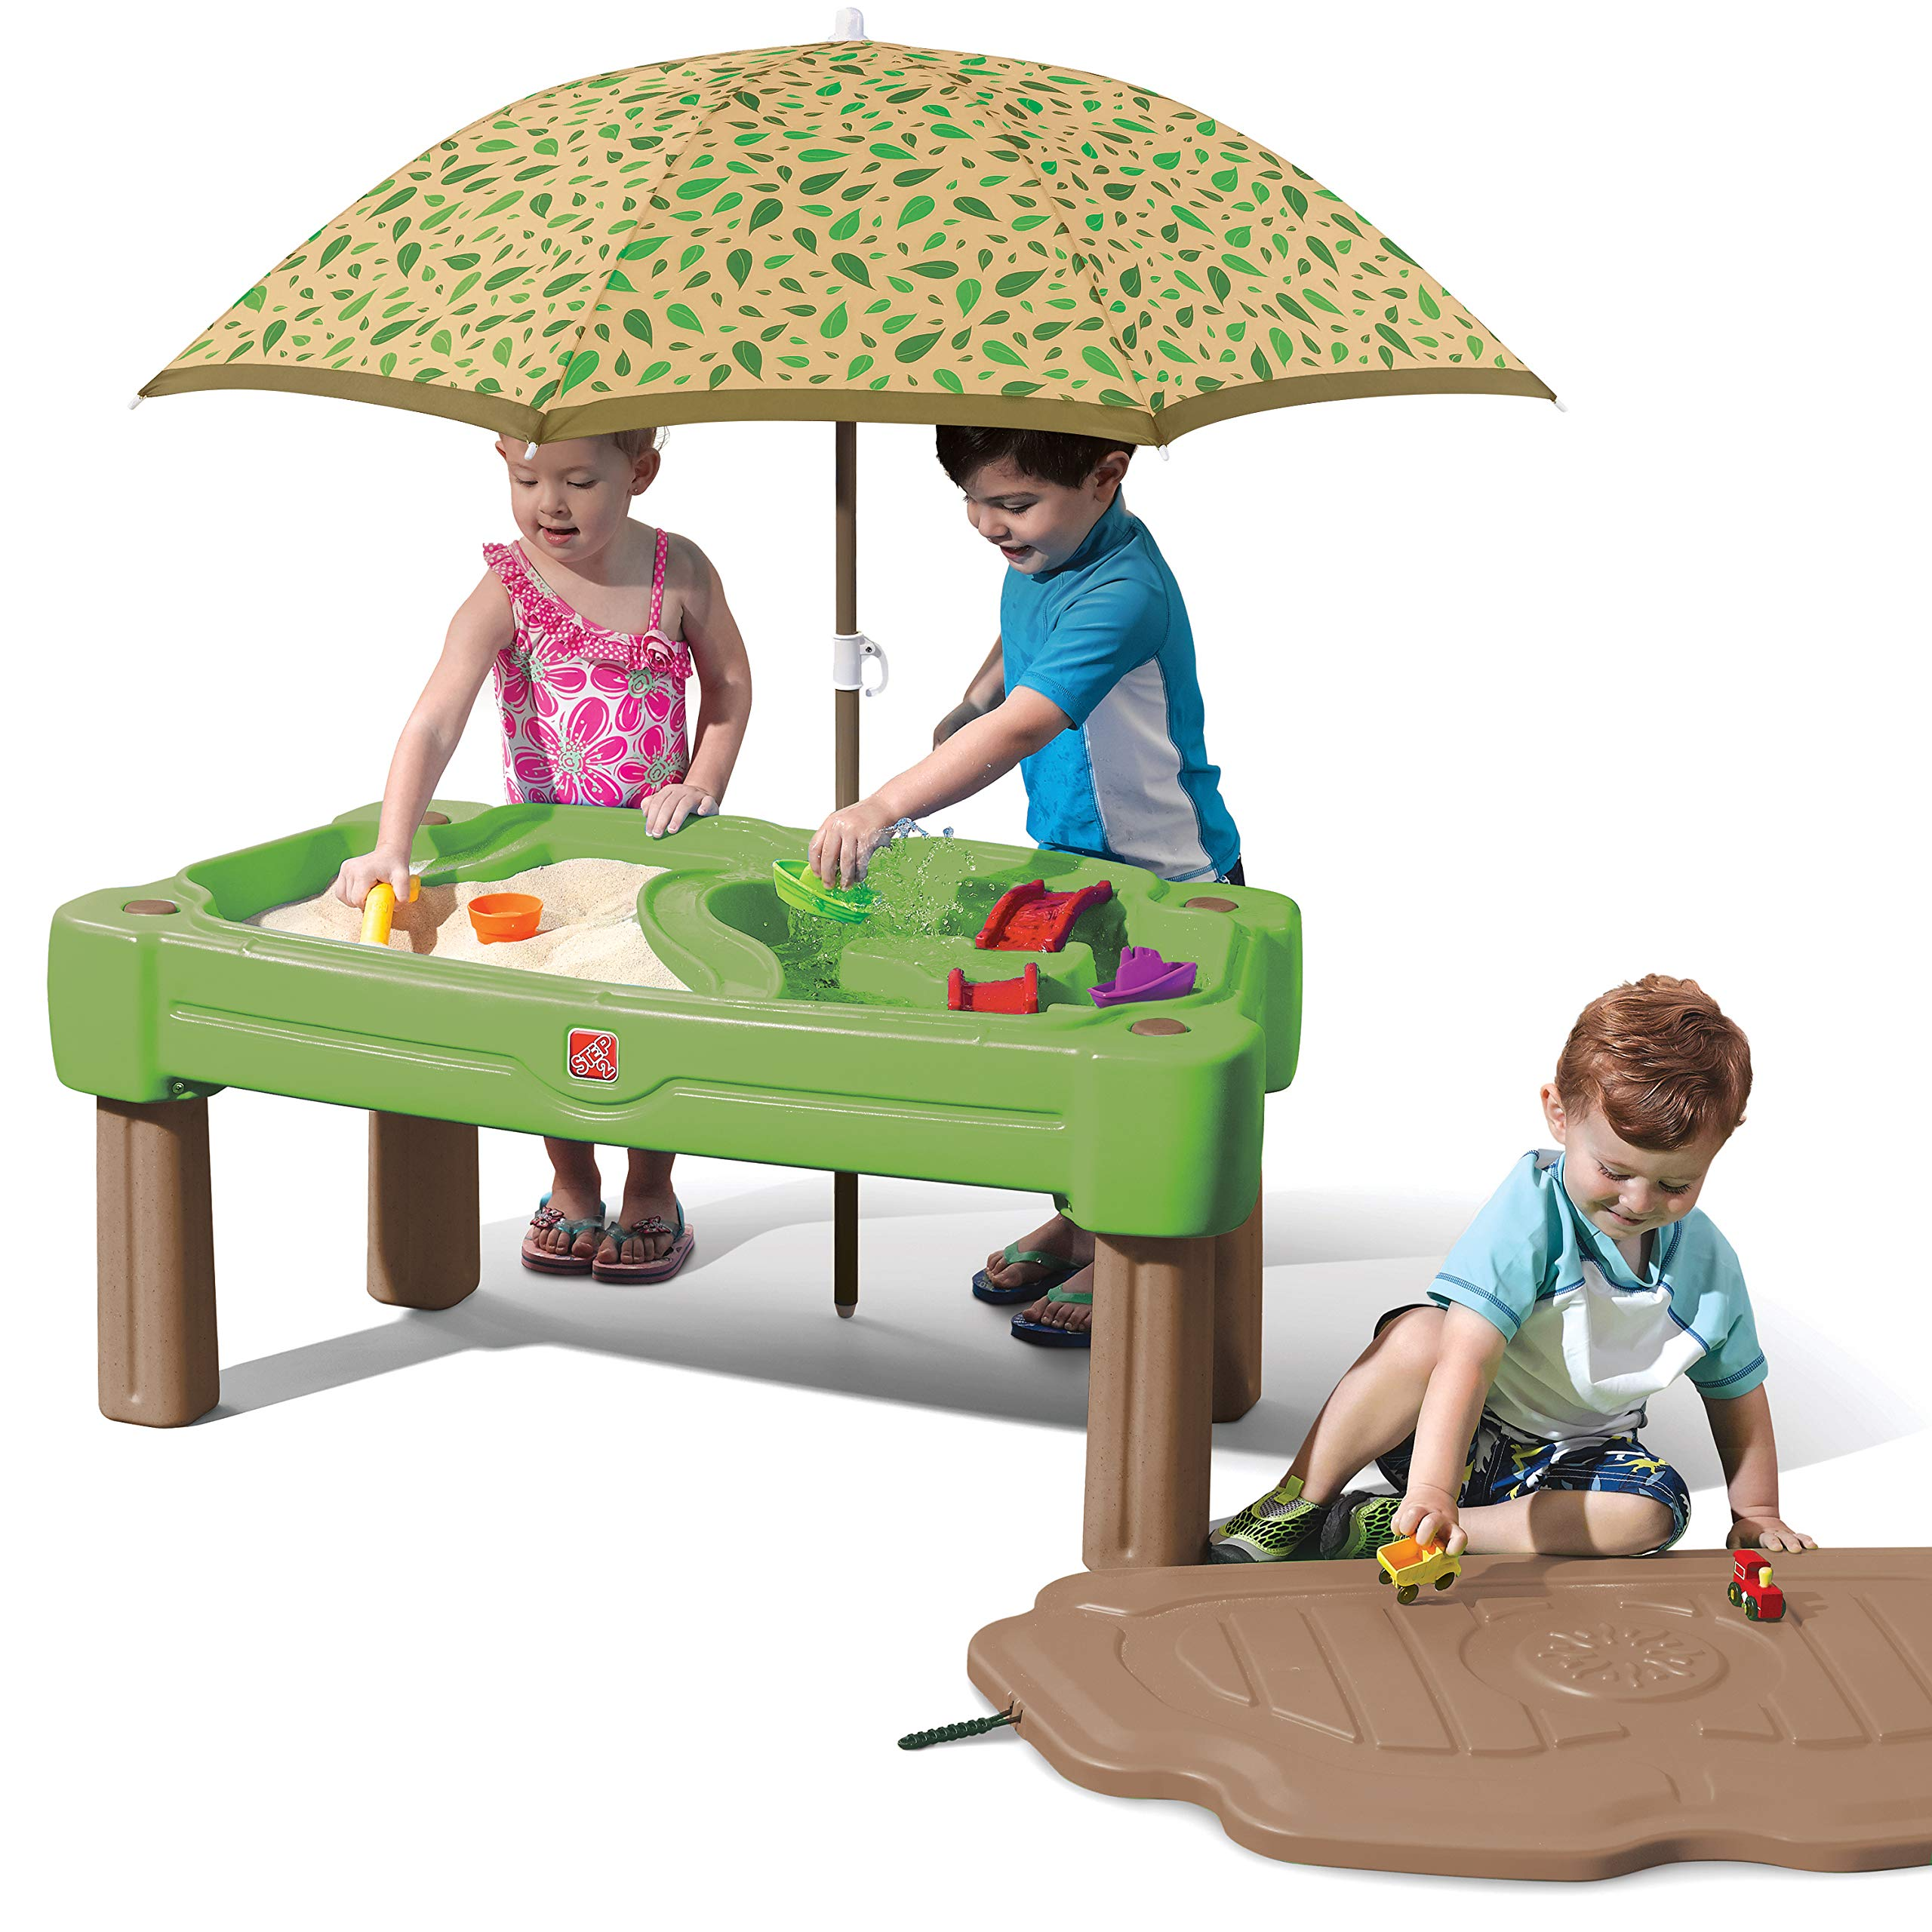 Step2 Cascading Cove Sand & Water Table with Umbrella | Kids Sand & Water Play Table with Umbrella | 6-pc Accessory Set Included by Step2